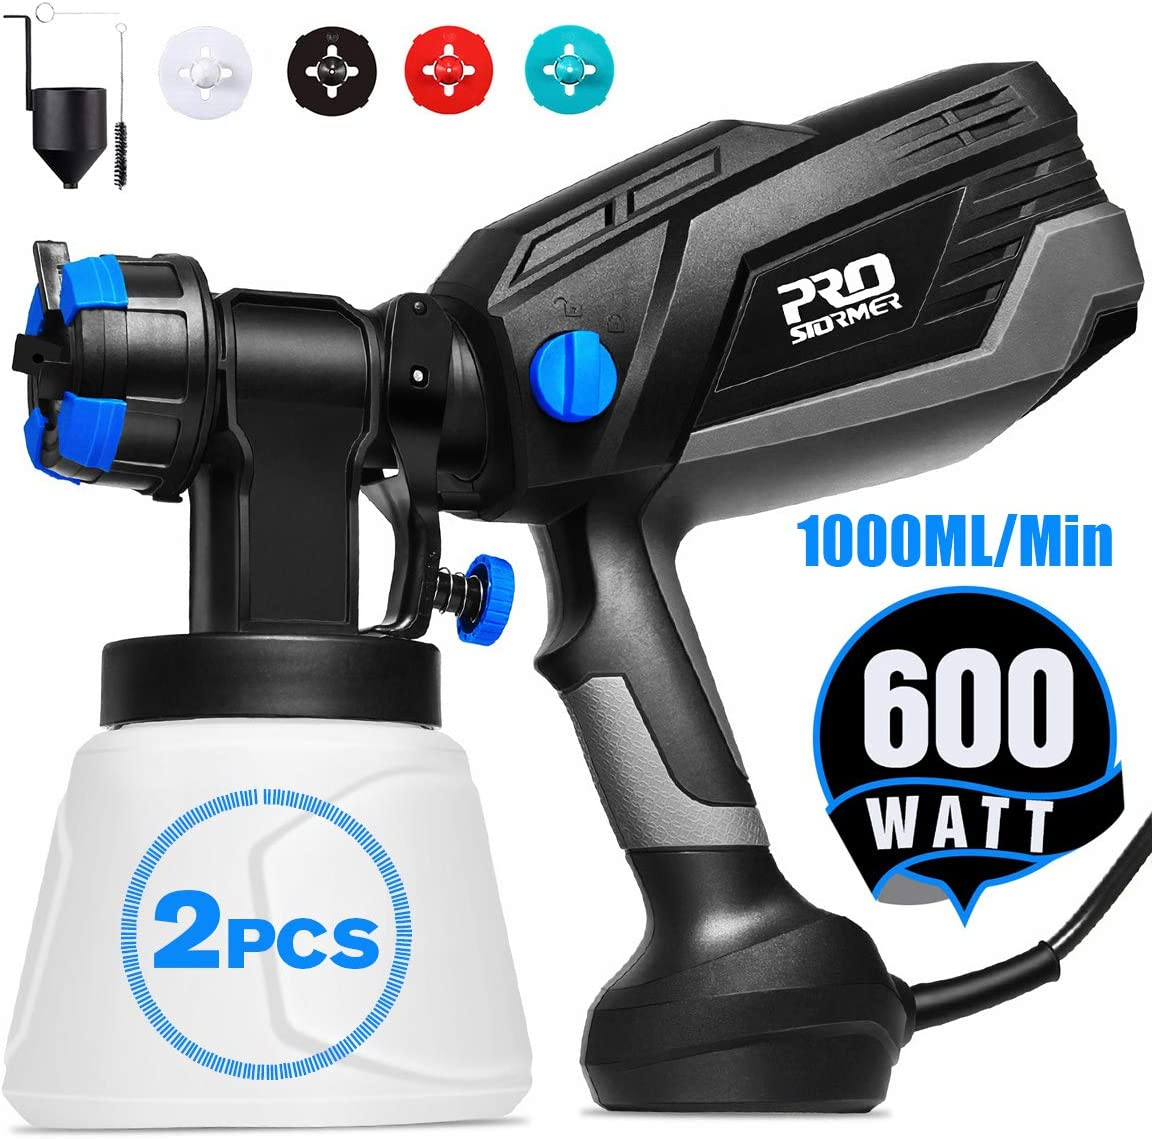 Paint Sprayer, Prostormer 1000ml min HVLP Electric Paint Spray Gun with 3 Spraying Patterns, 4 Nozzle Sizes, 2Pcs 1000ml Detachable Containers, Easy to Spray and Clean